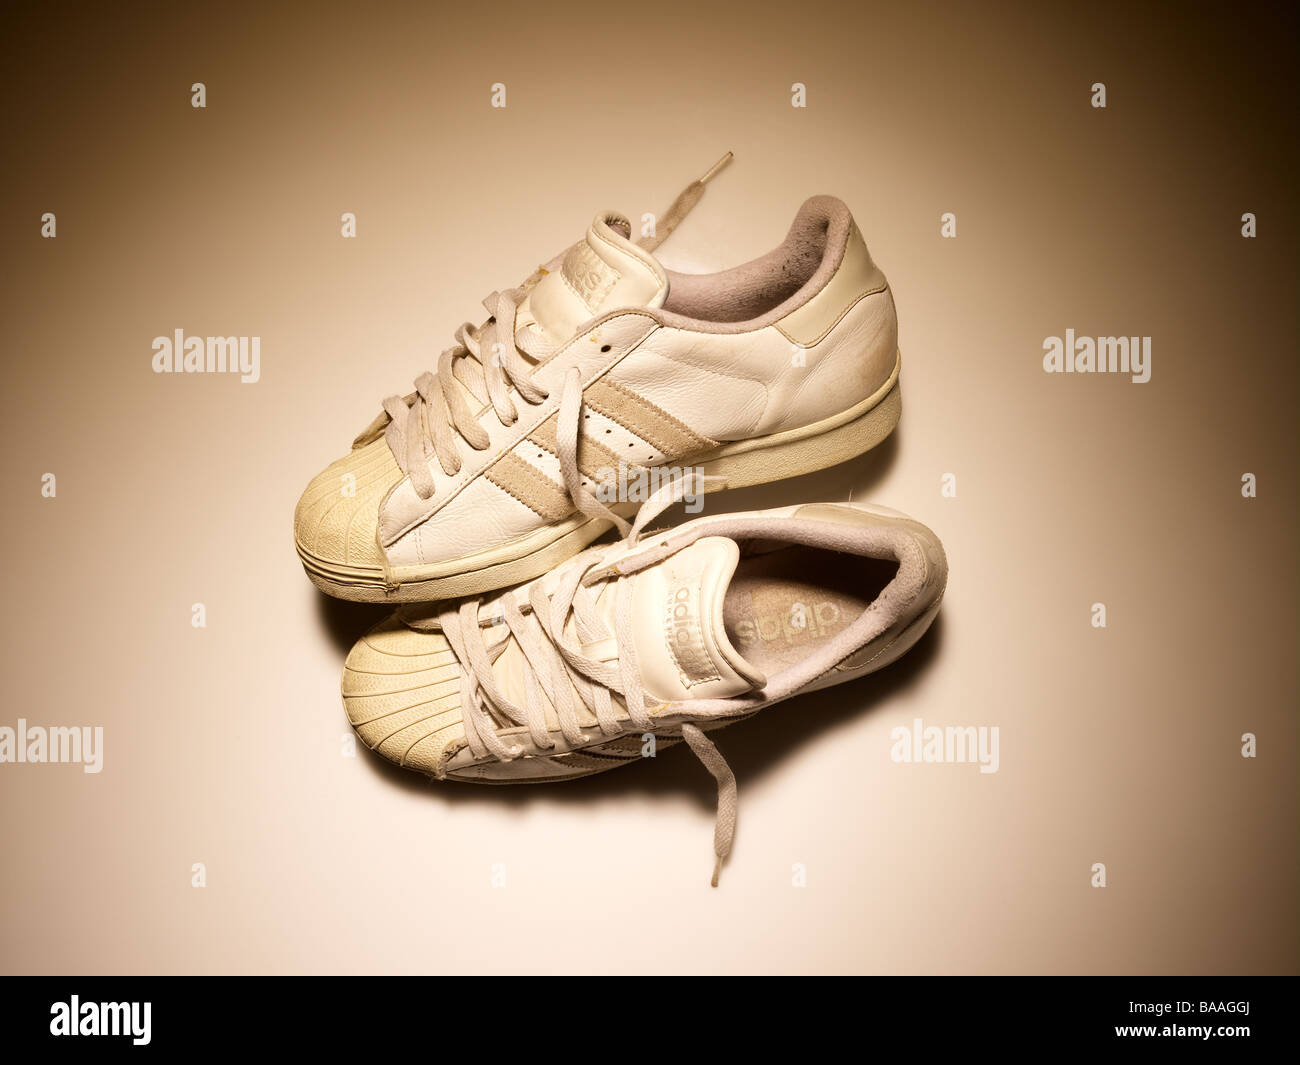 Old pair of trainers sneakers - Stock Image